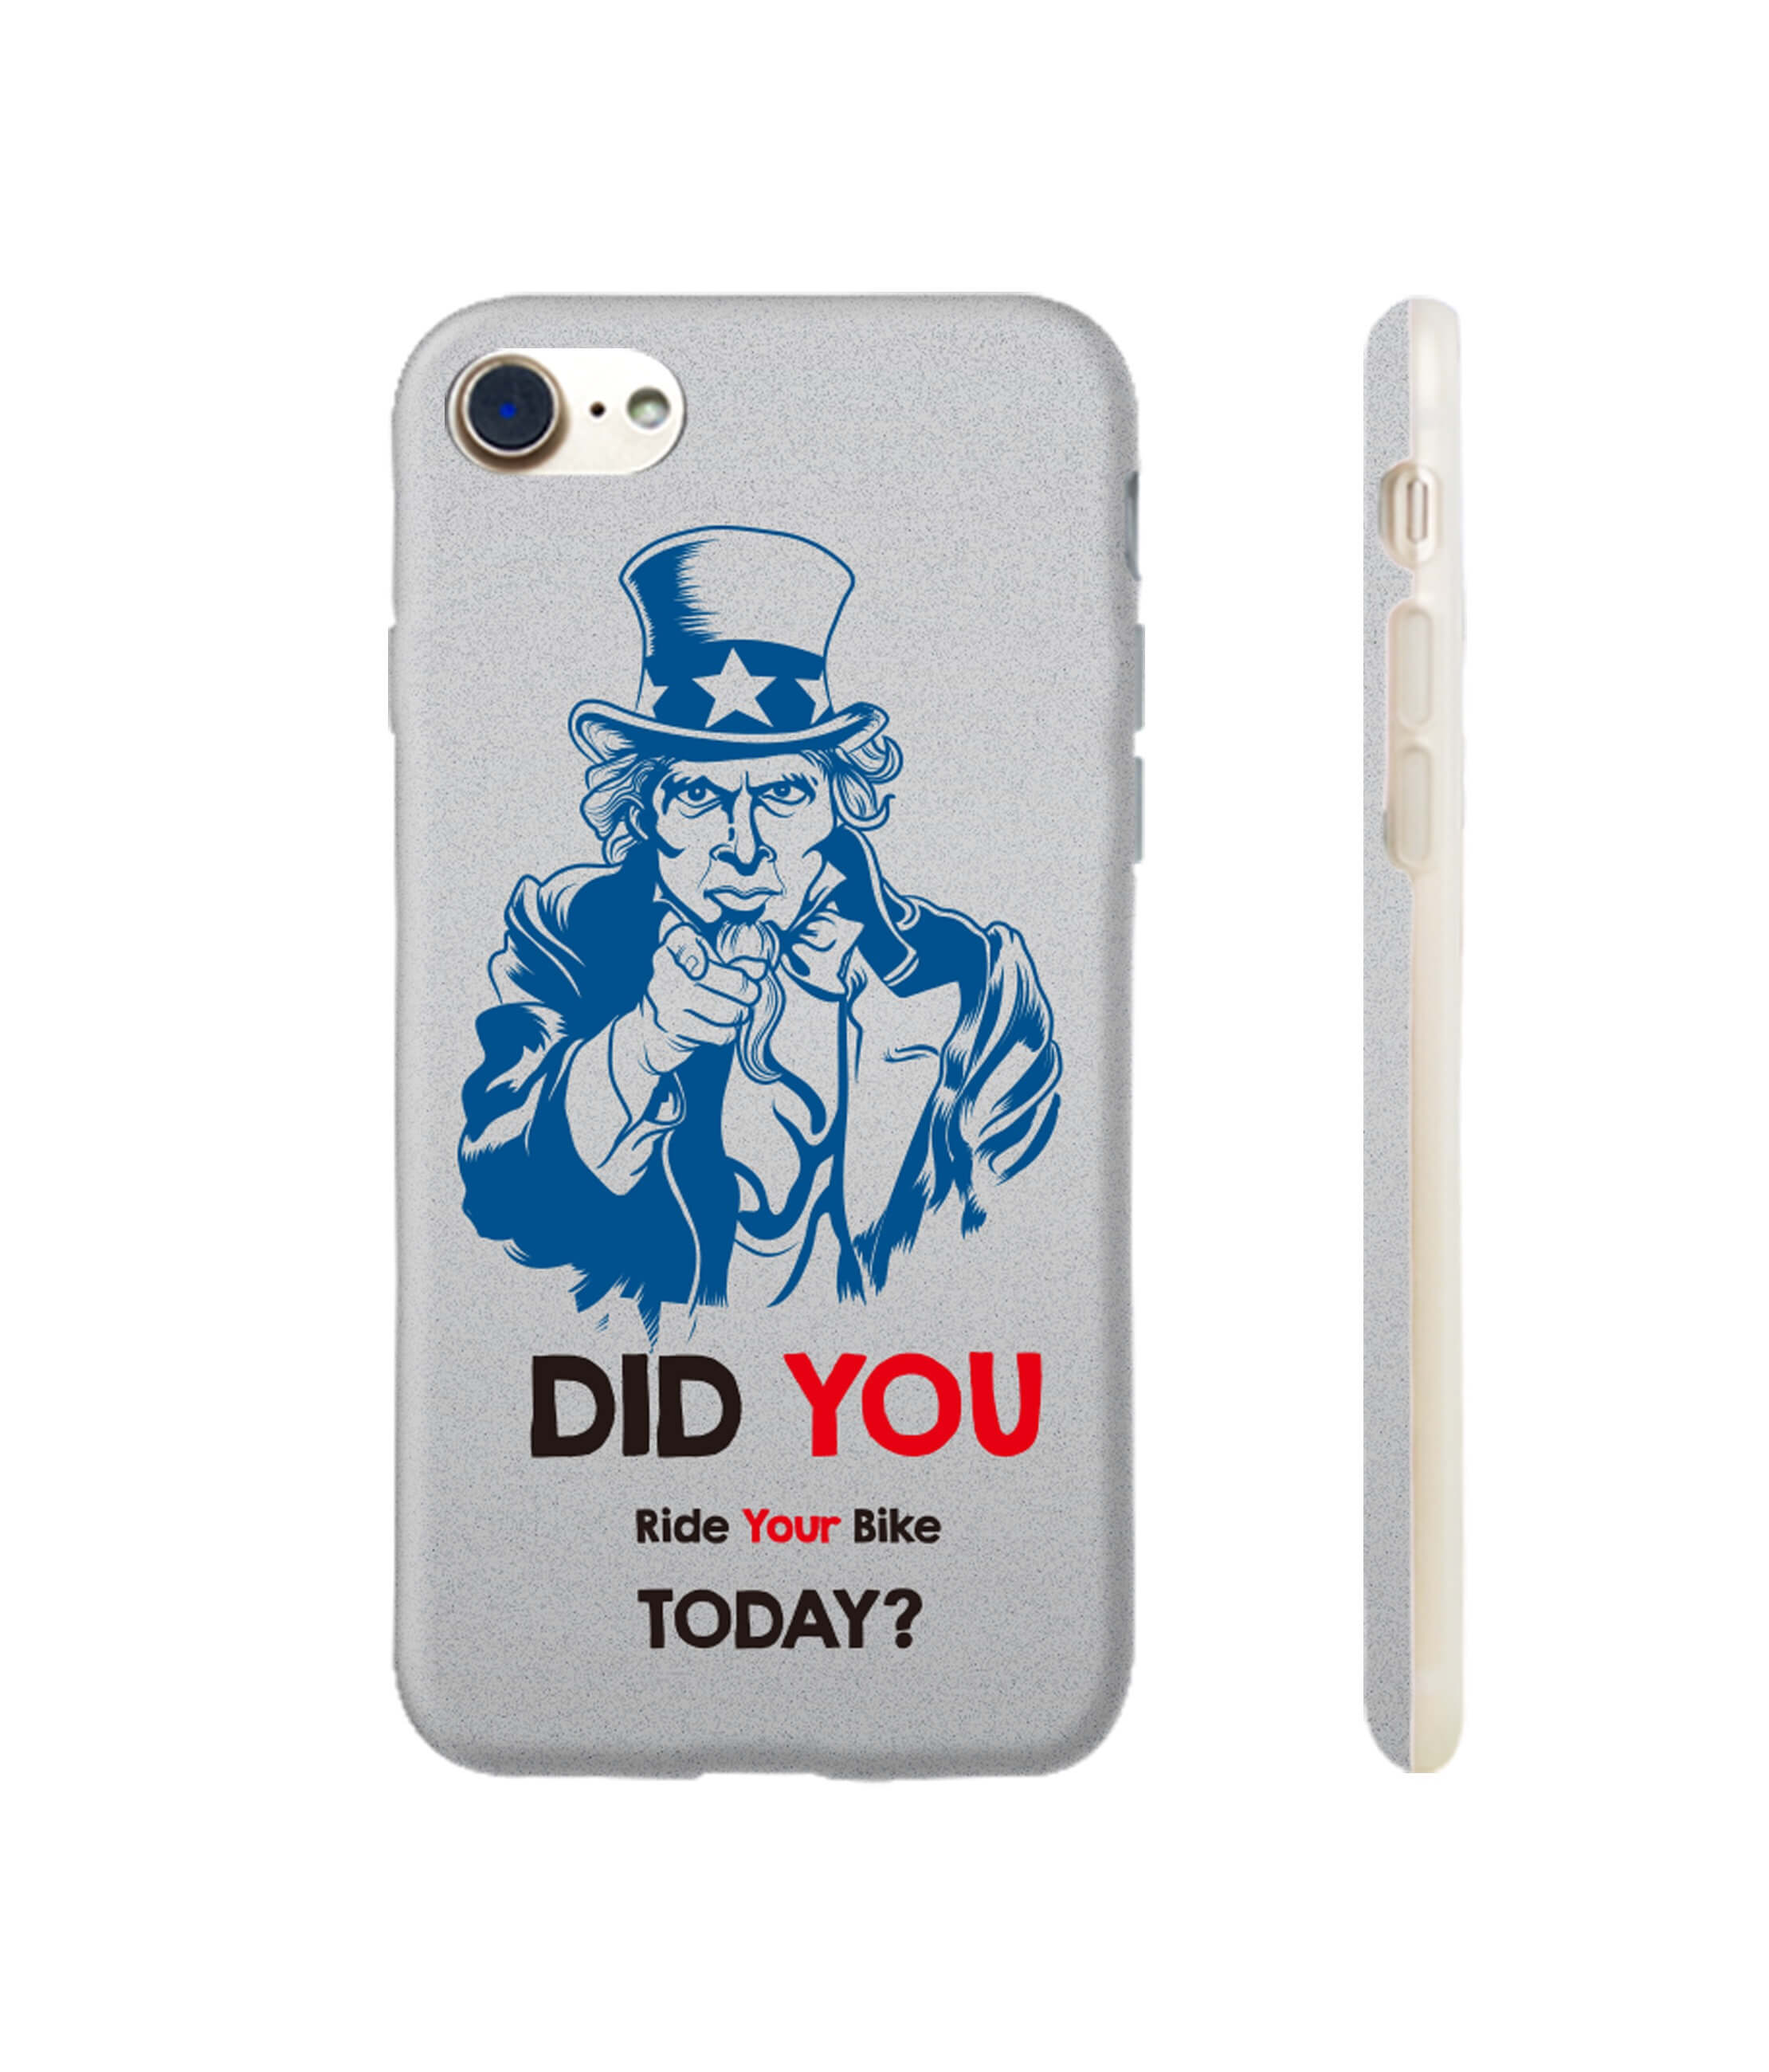 Telefoon-hoesje-iphone7-uncle-Sam-did-you-ride-your-bike-today